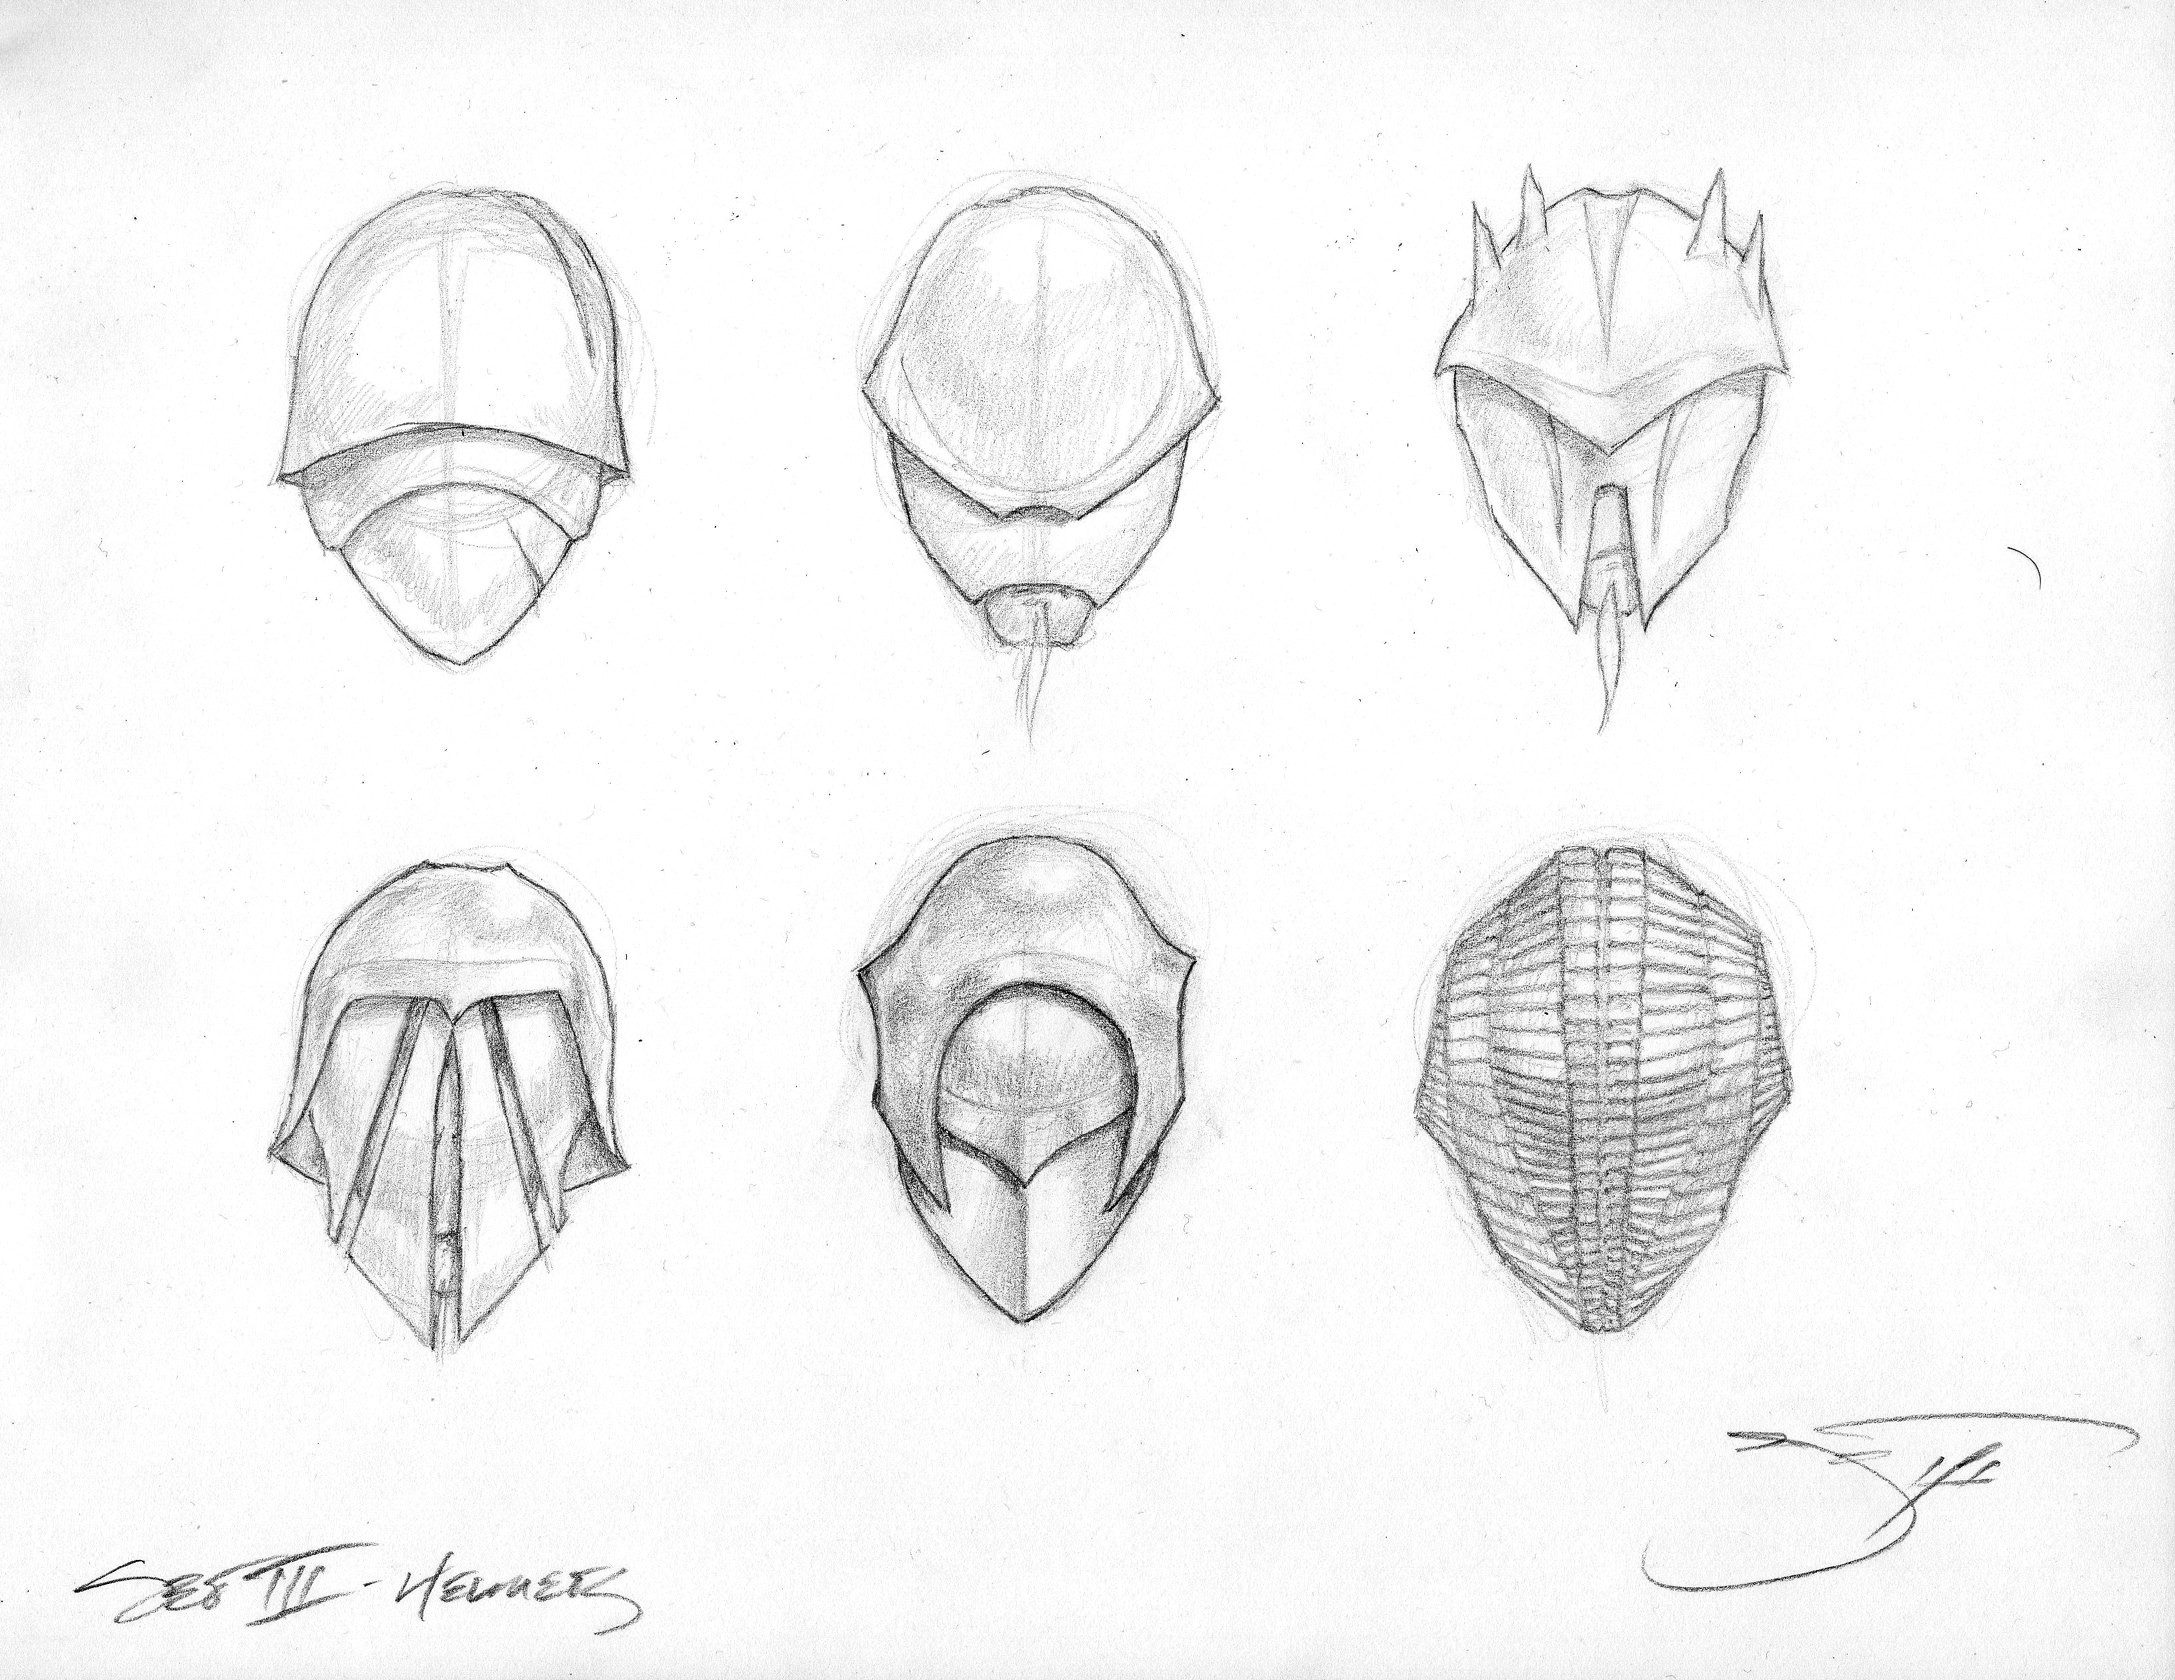 Sith Lord Rough Sketches - Masks Helmets III  026